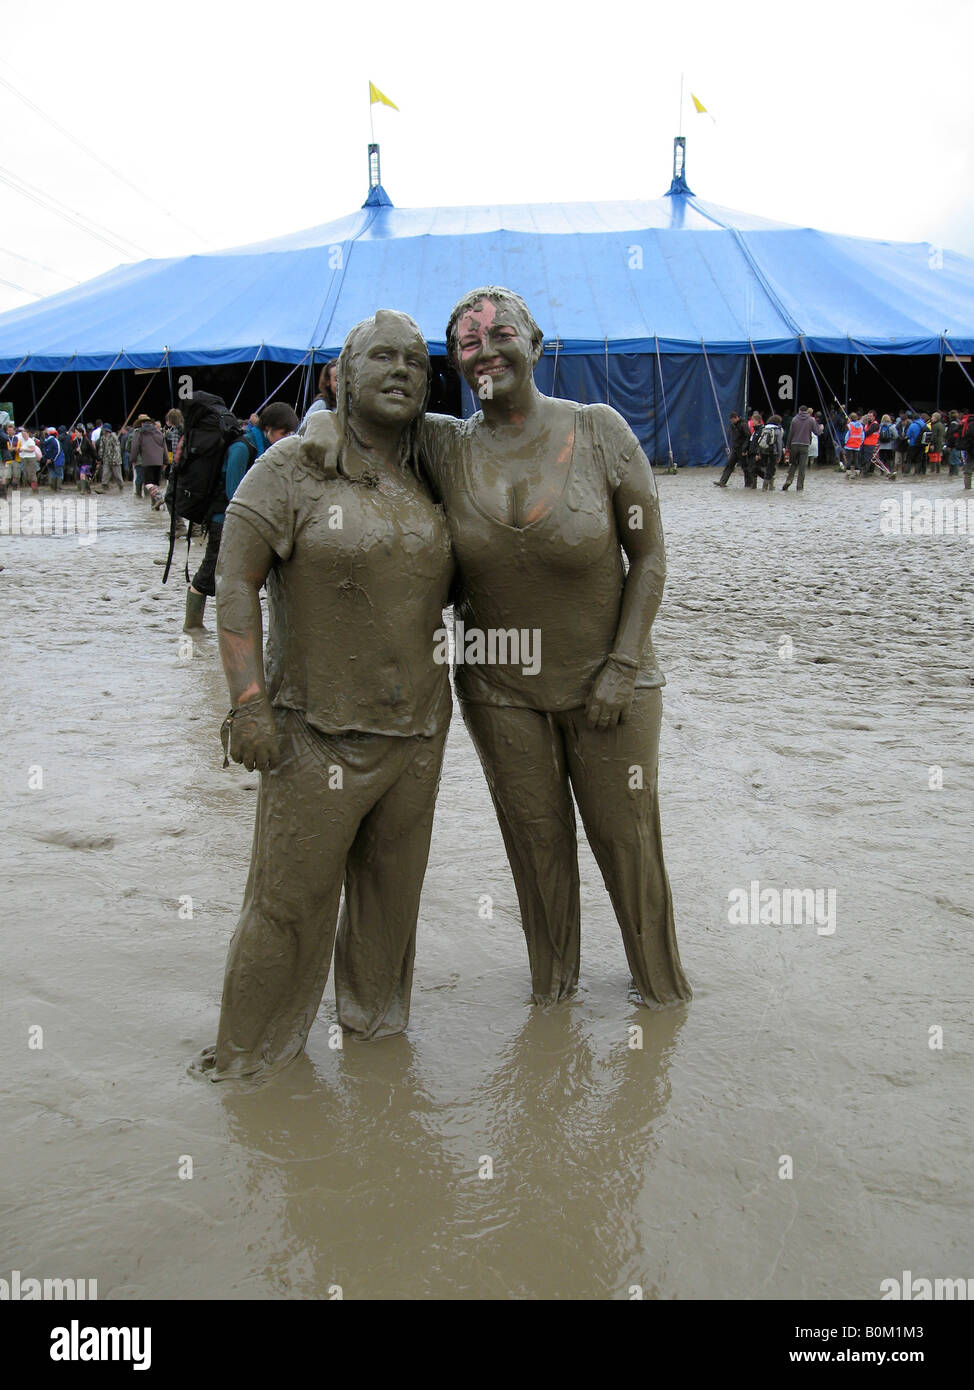 Muddy Clothes Stock Photos  Muddy Clothes Stock Images  Alamy